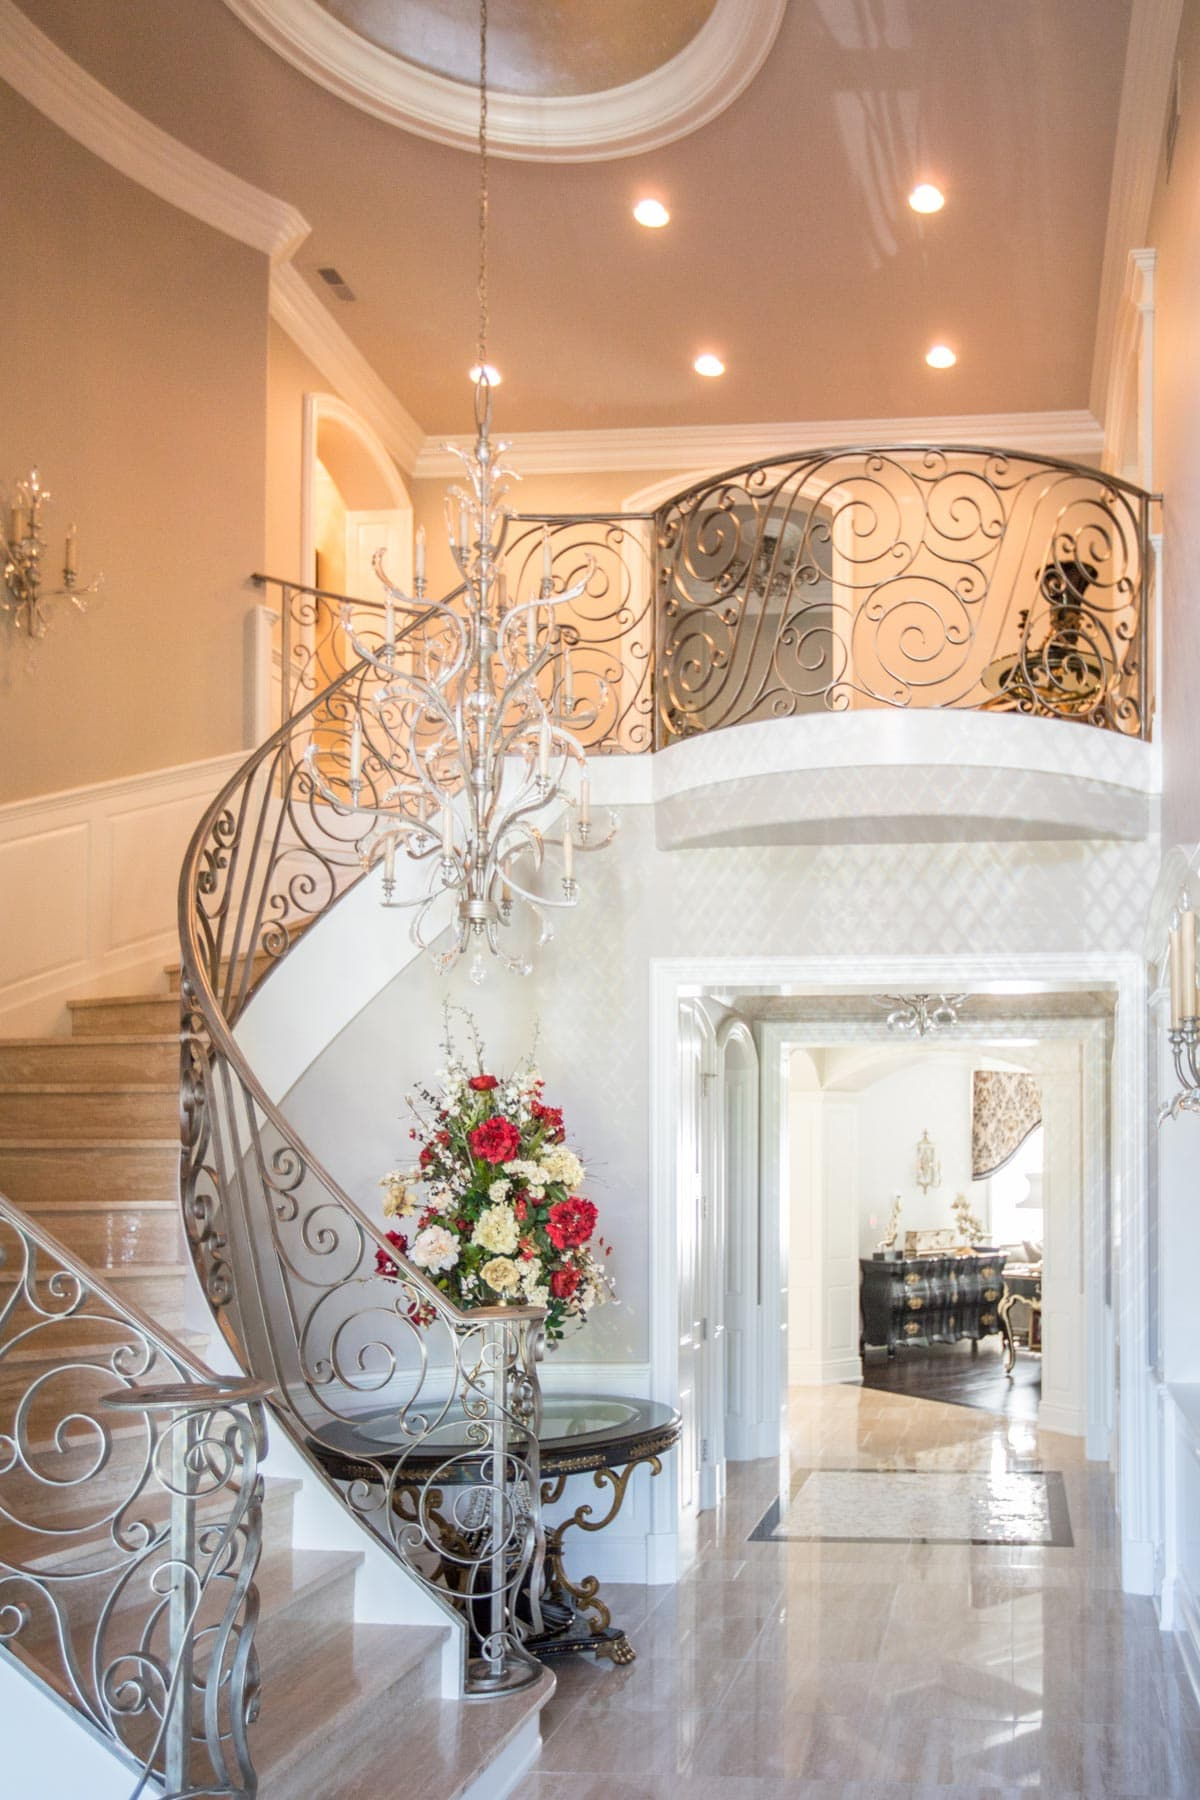 Foyer Furniture And Decor : Luxury home foyer decor and furniture